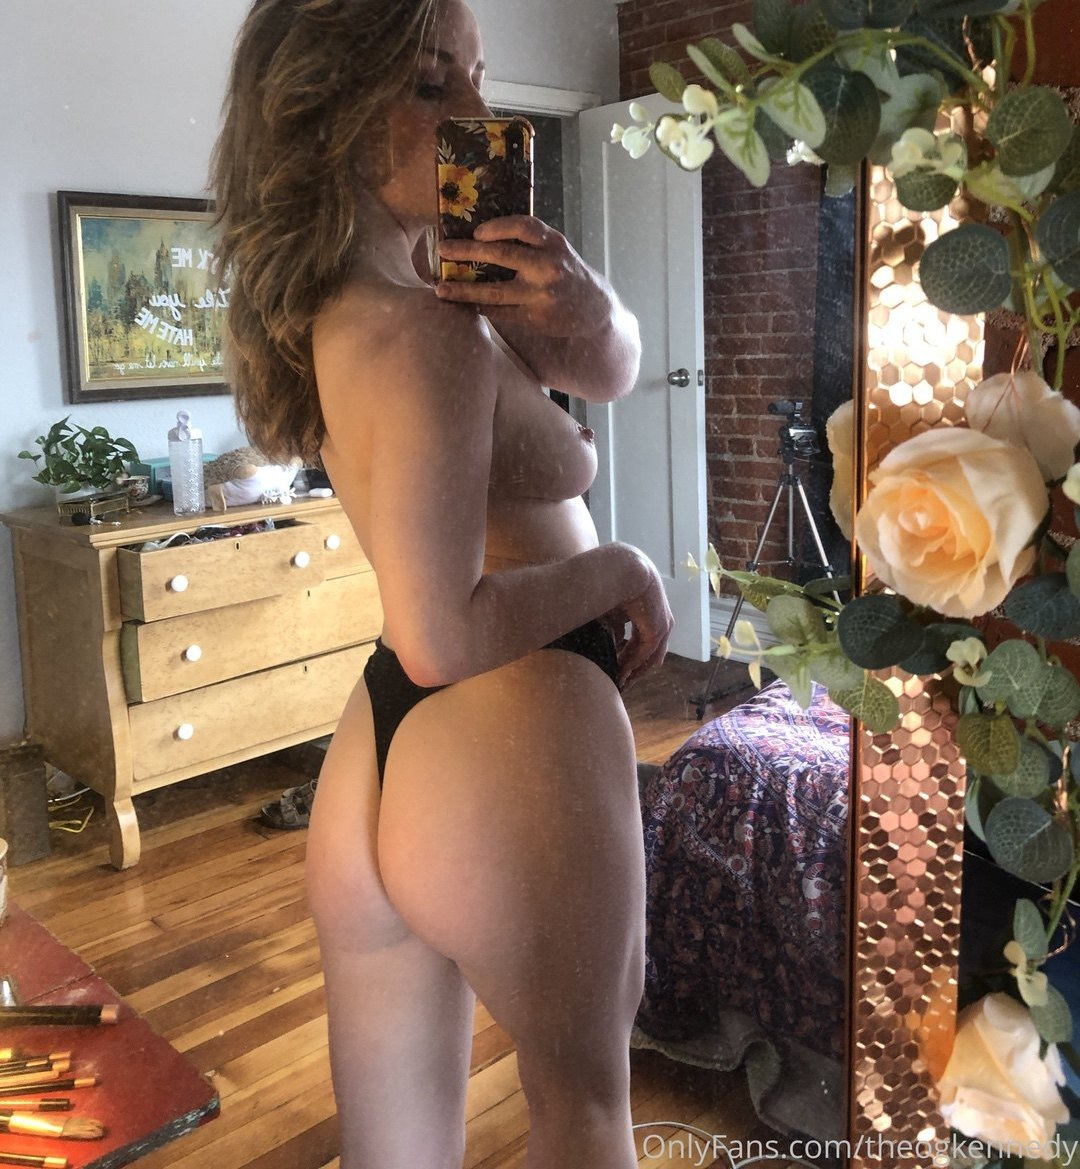 Kate Kennedy Theogkennedy Onlyfans Nudes Leaks 0027